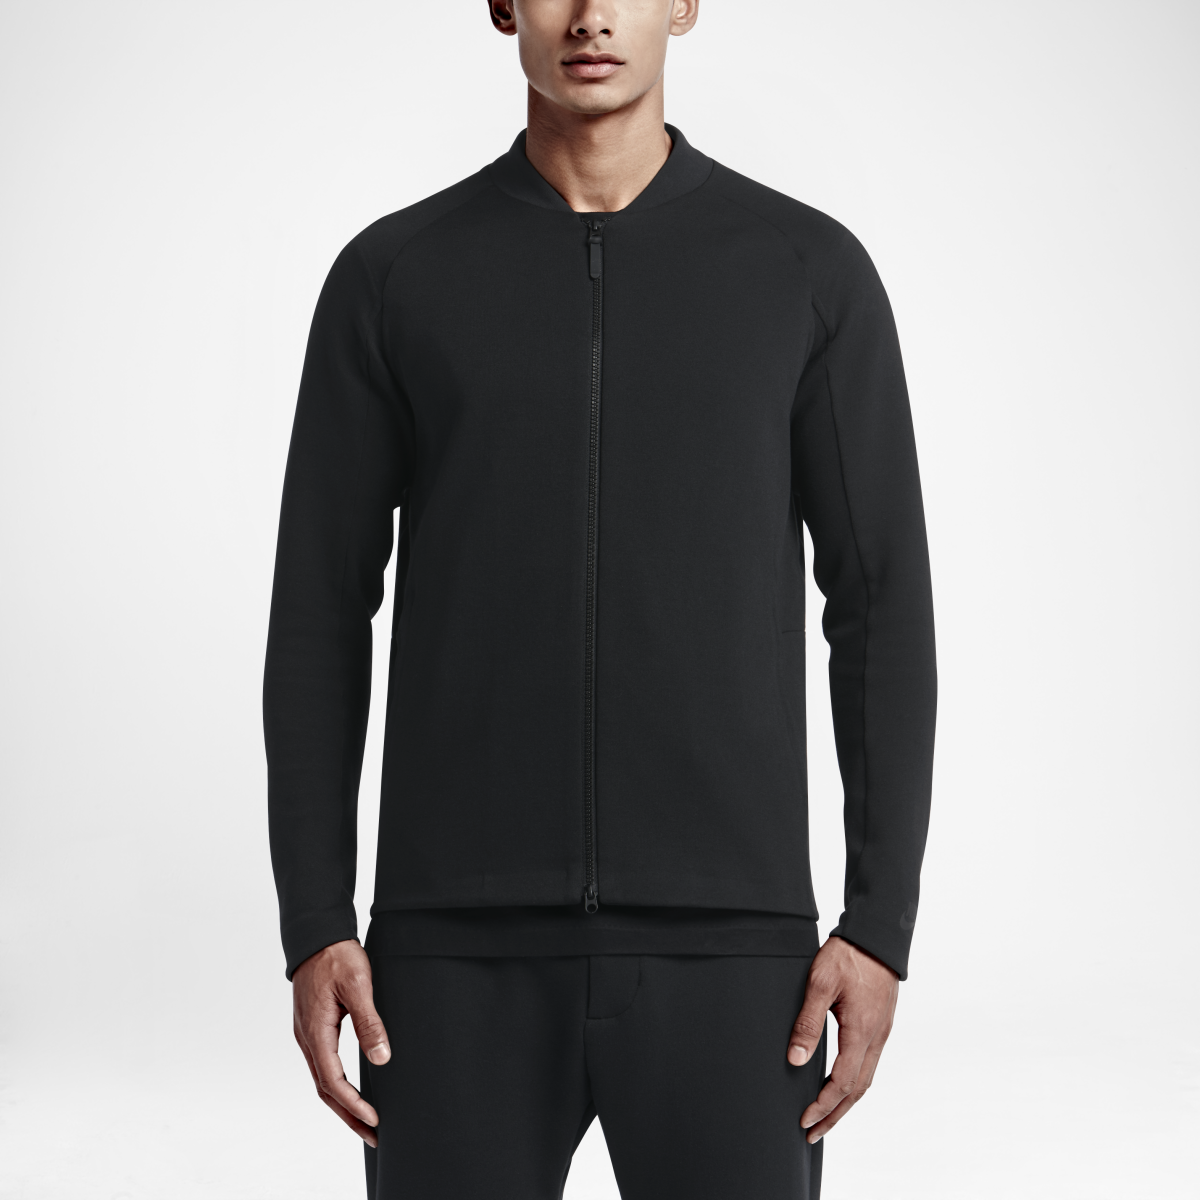 nikelab-transform-jacket-03.png